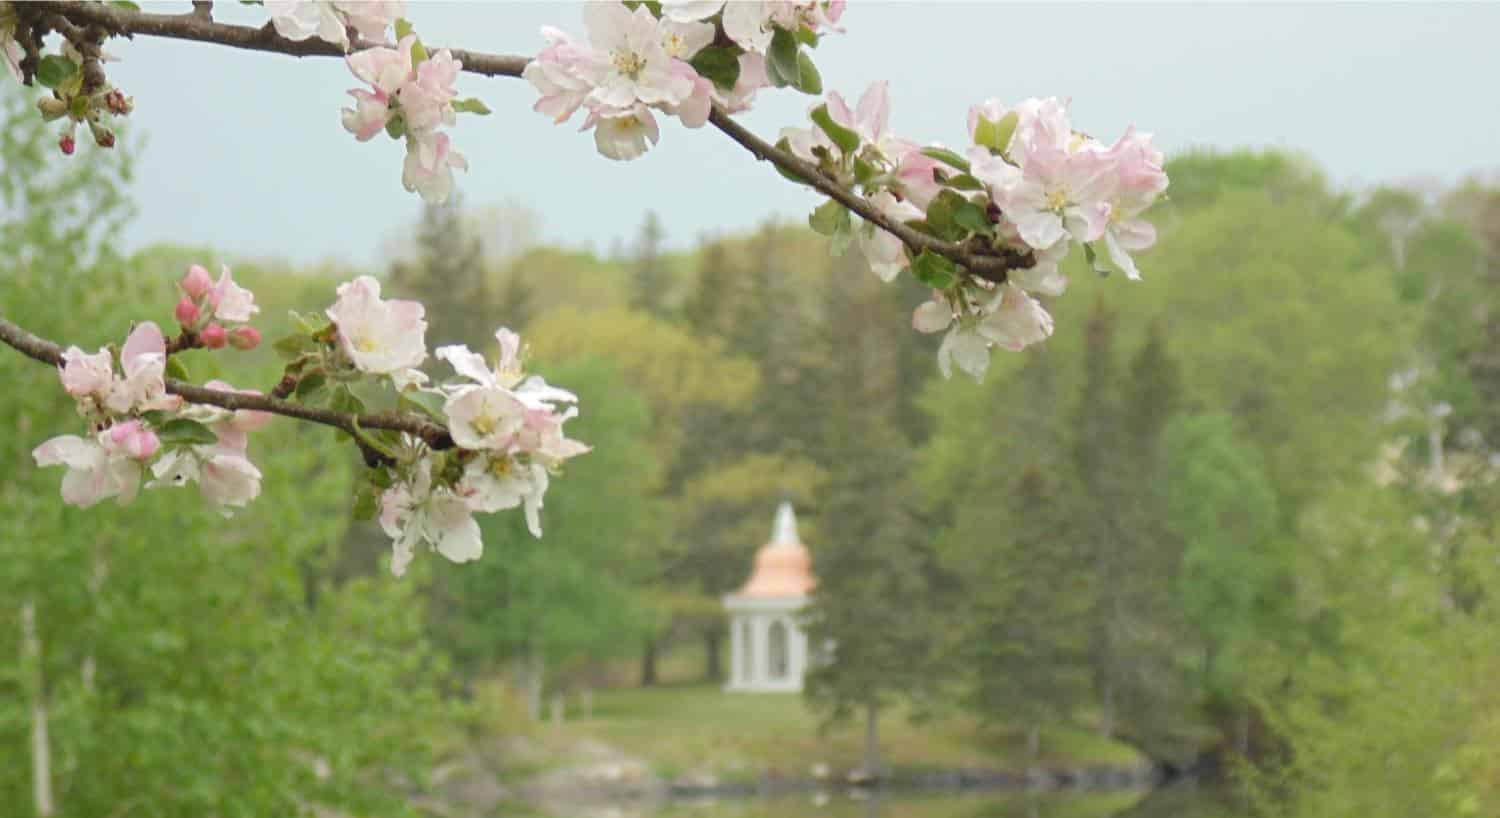 Close up view of white cherry blossom flowers with a park full of trees and a white gazebo in the background